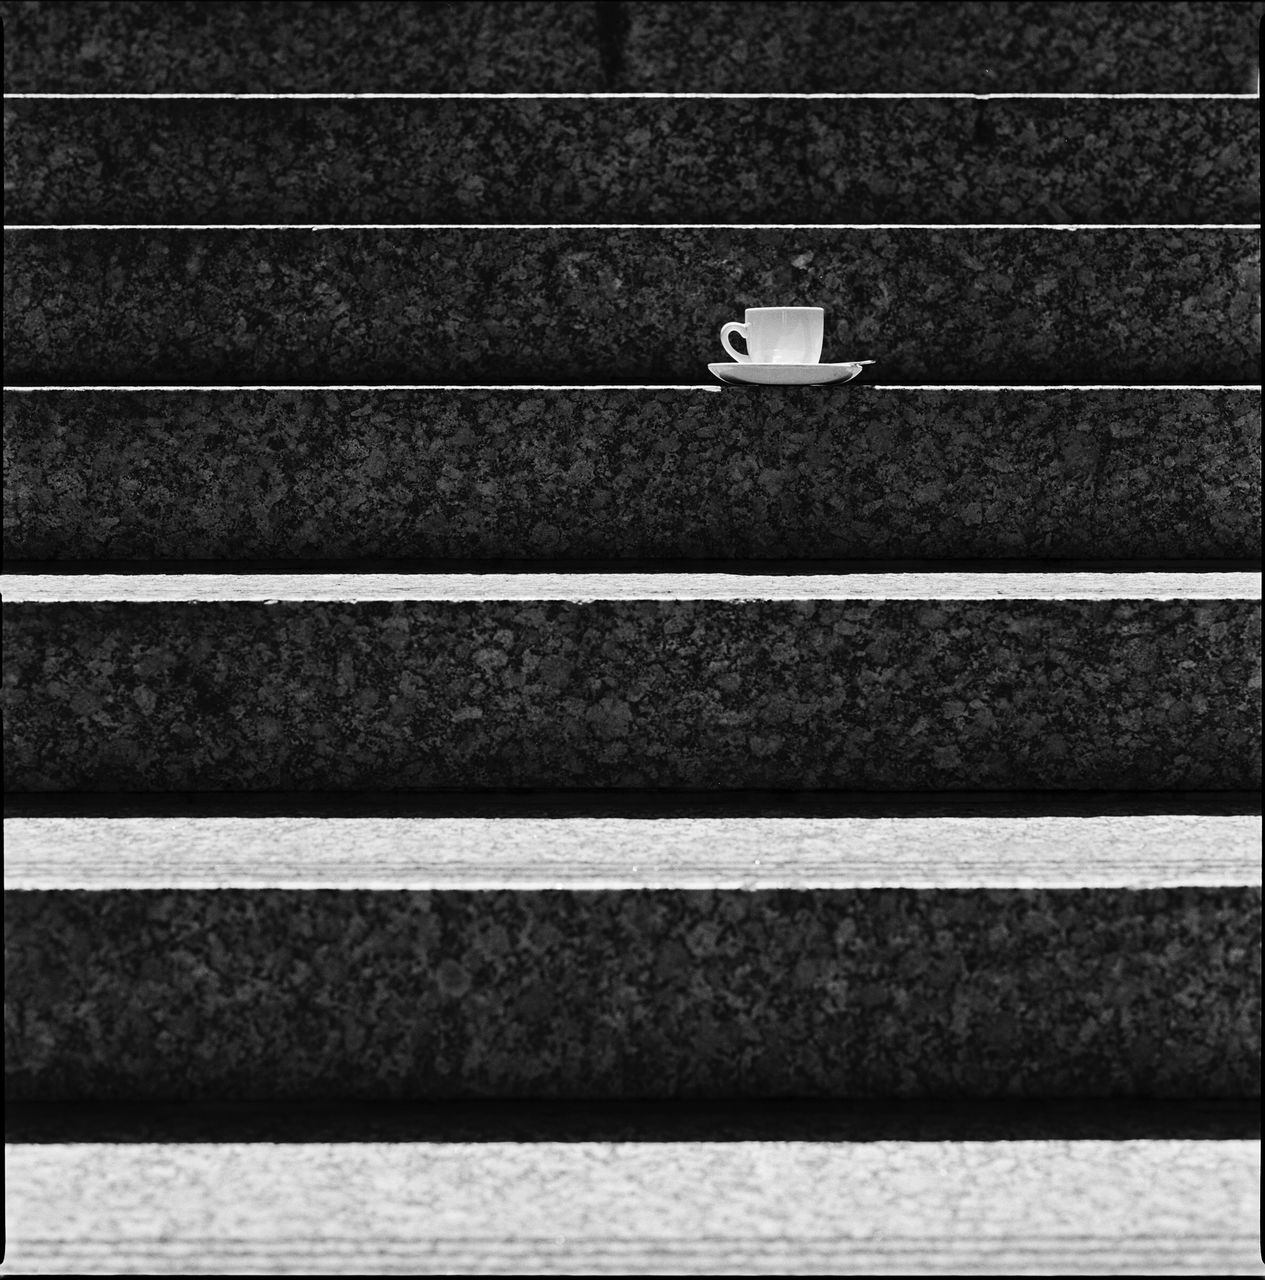 Full frame shot of steps with cup